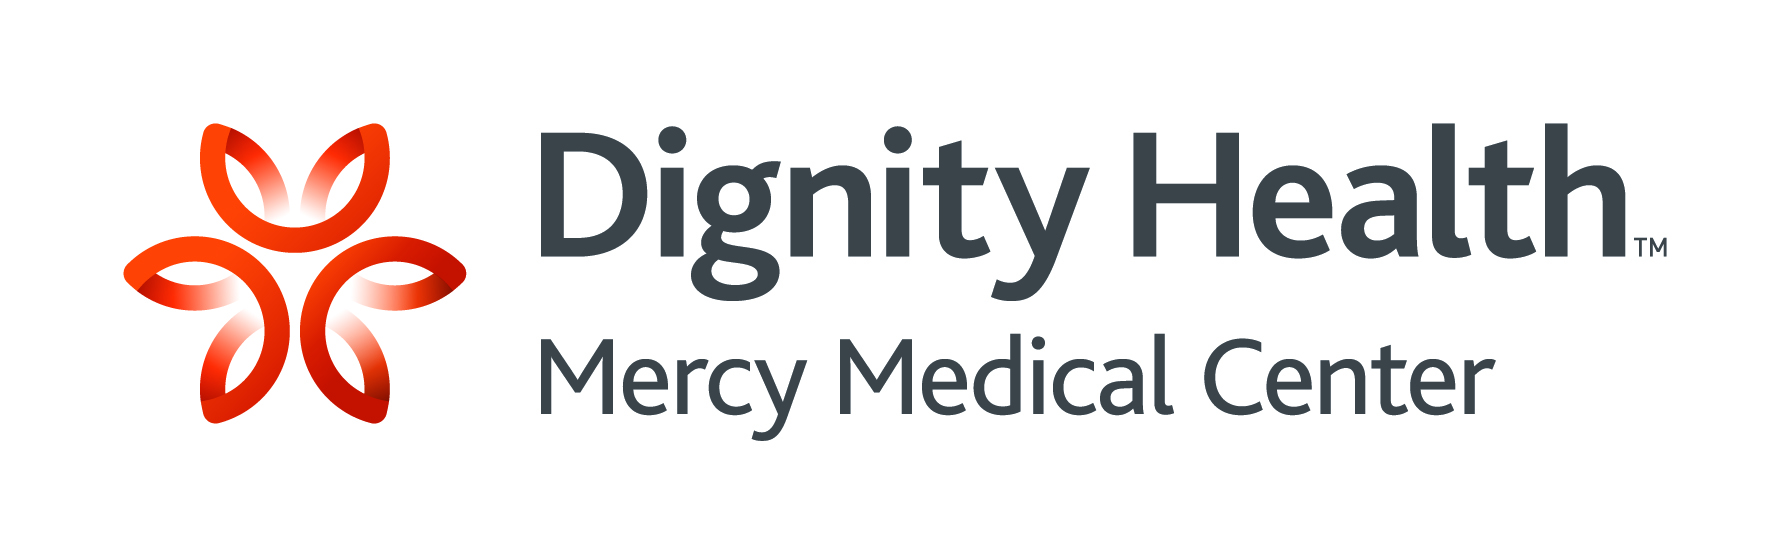 01. Dignity Health Mercy Medical Center (Presenting)